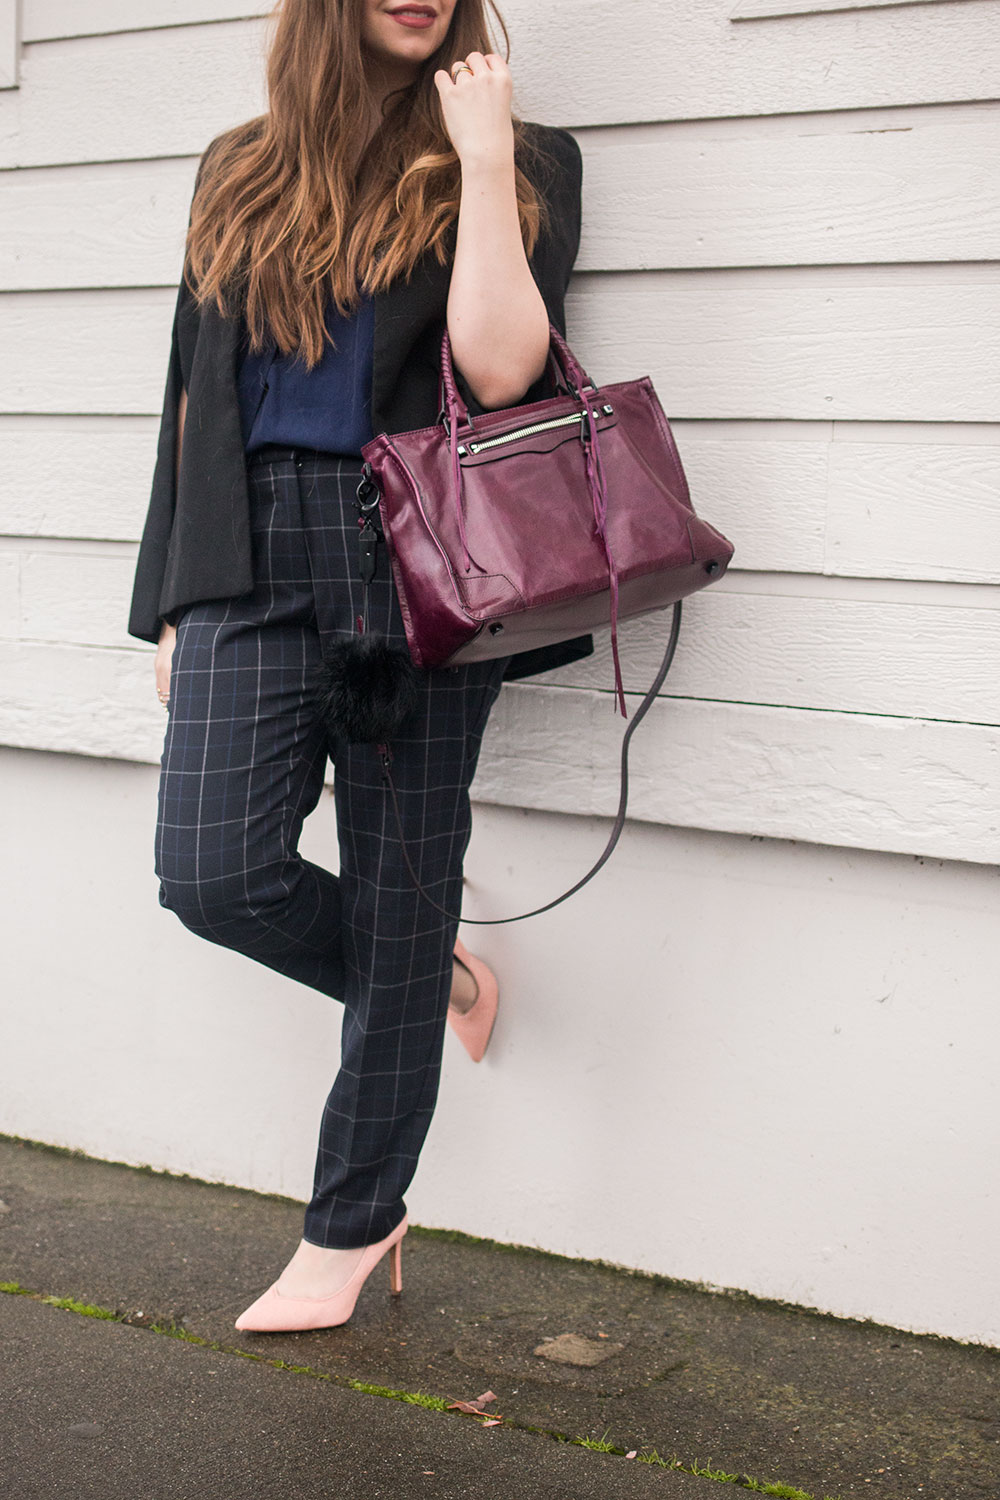 Winter Wear to Work Outfit Idea // Hello Rigby Seattle Fashion Blog